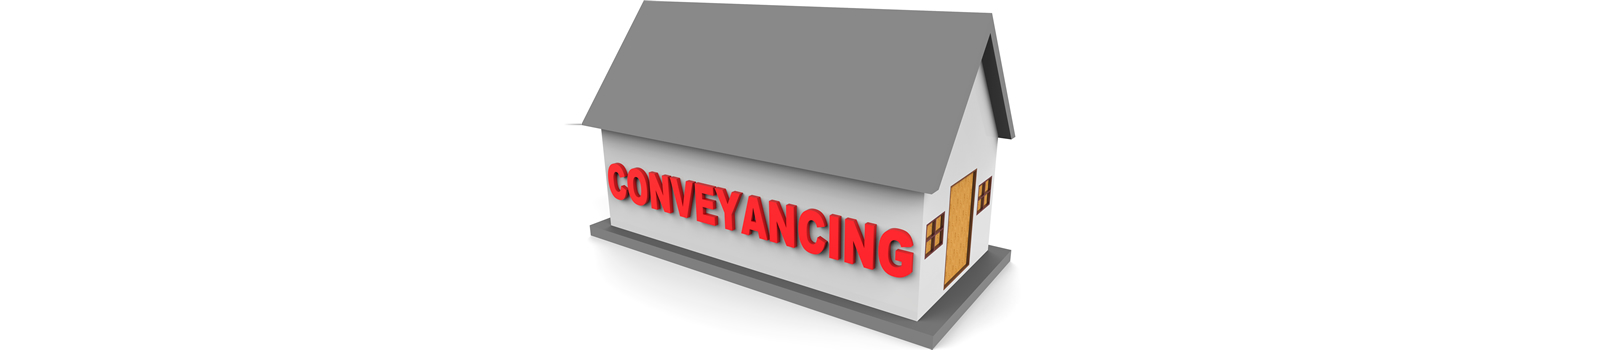 conveyancing-banner